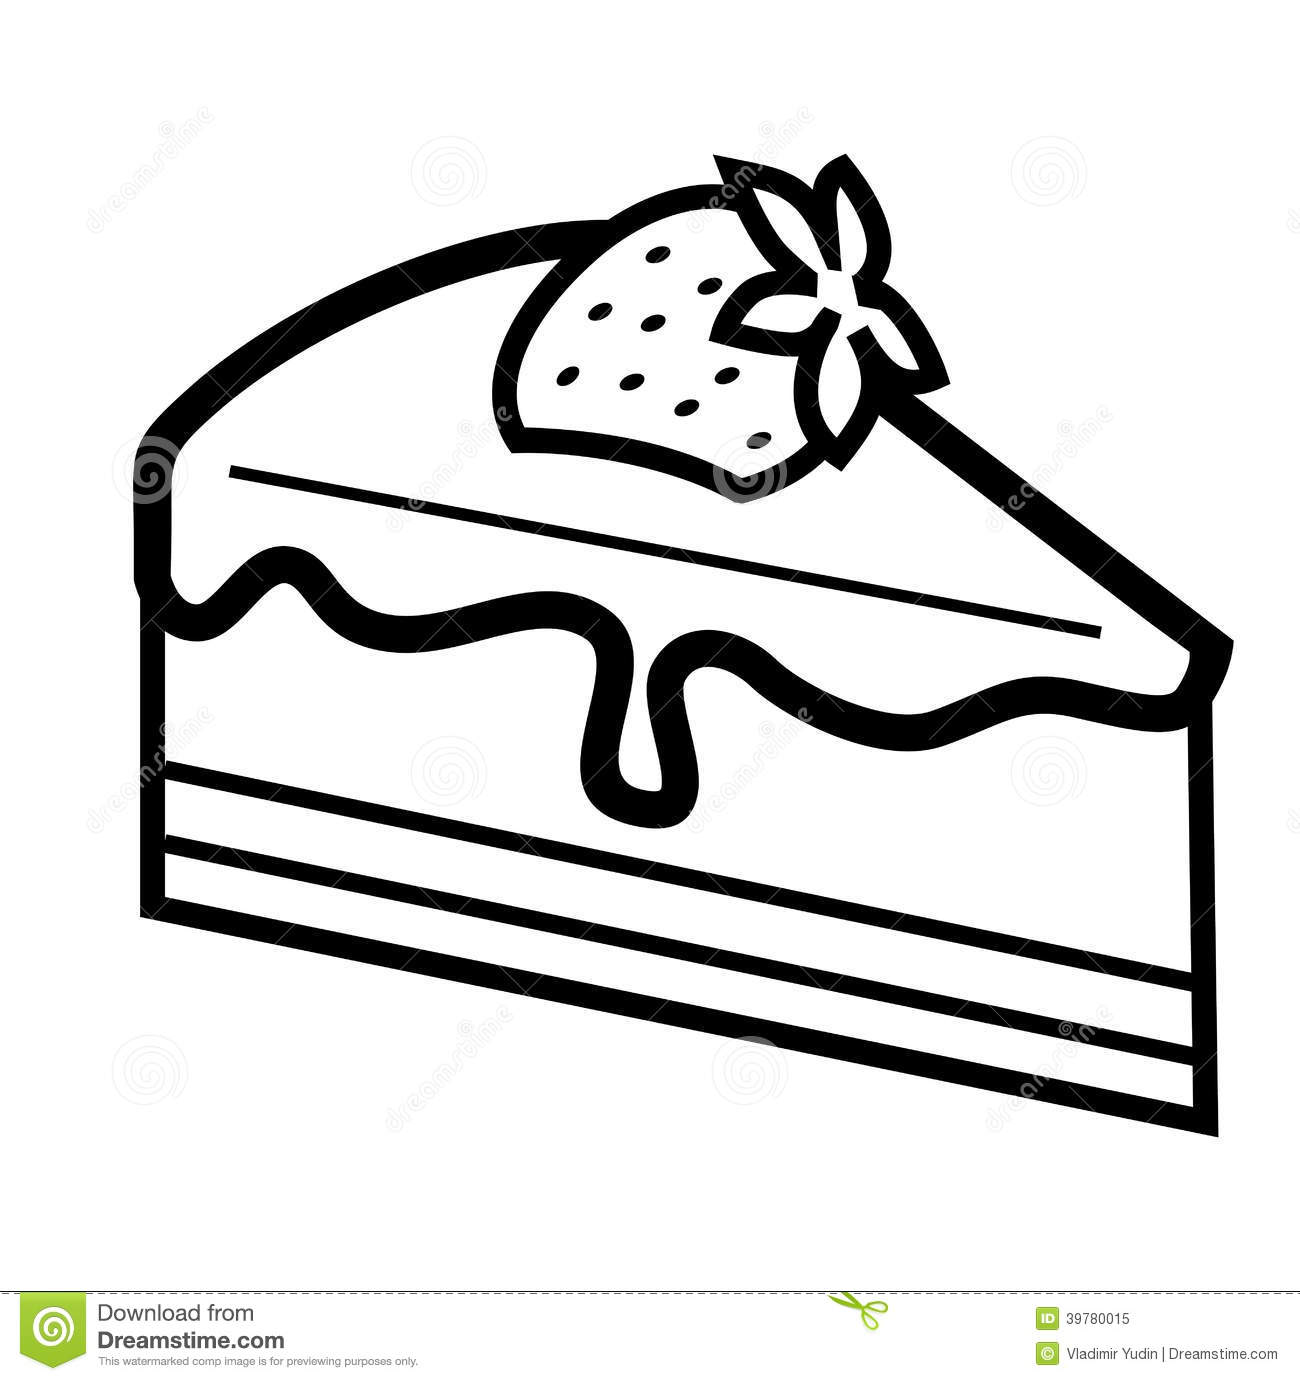 Piece Of Cake Clipart Black And White.